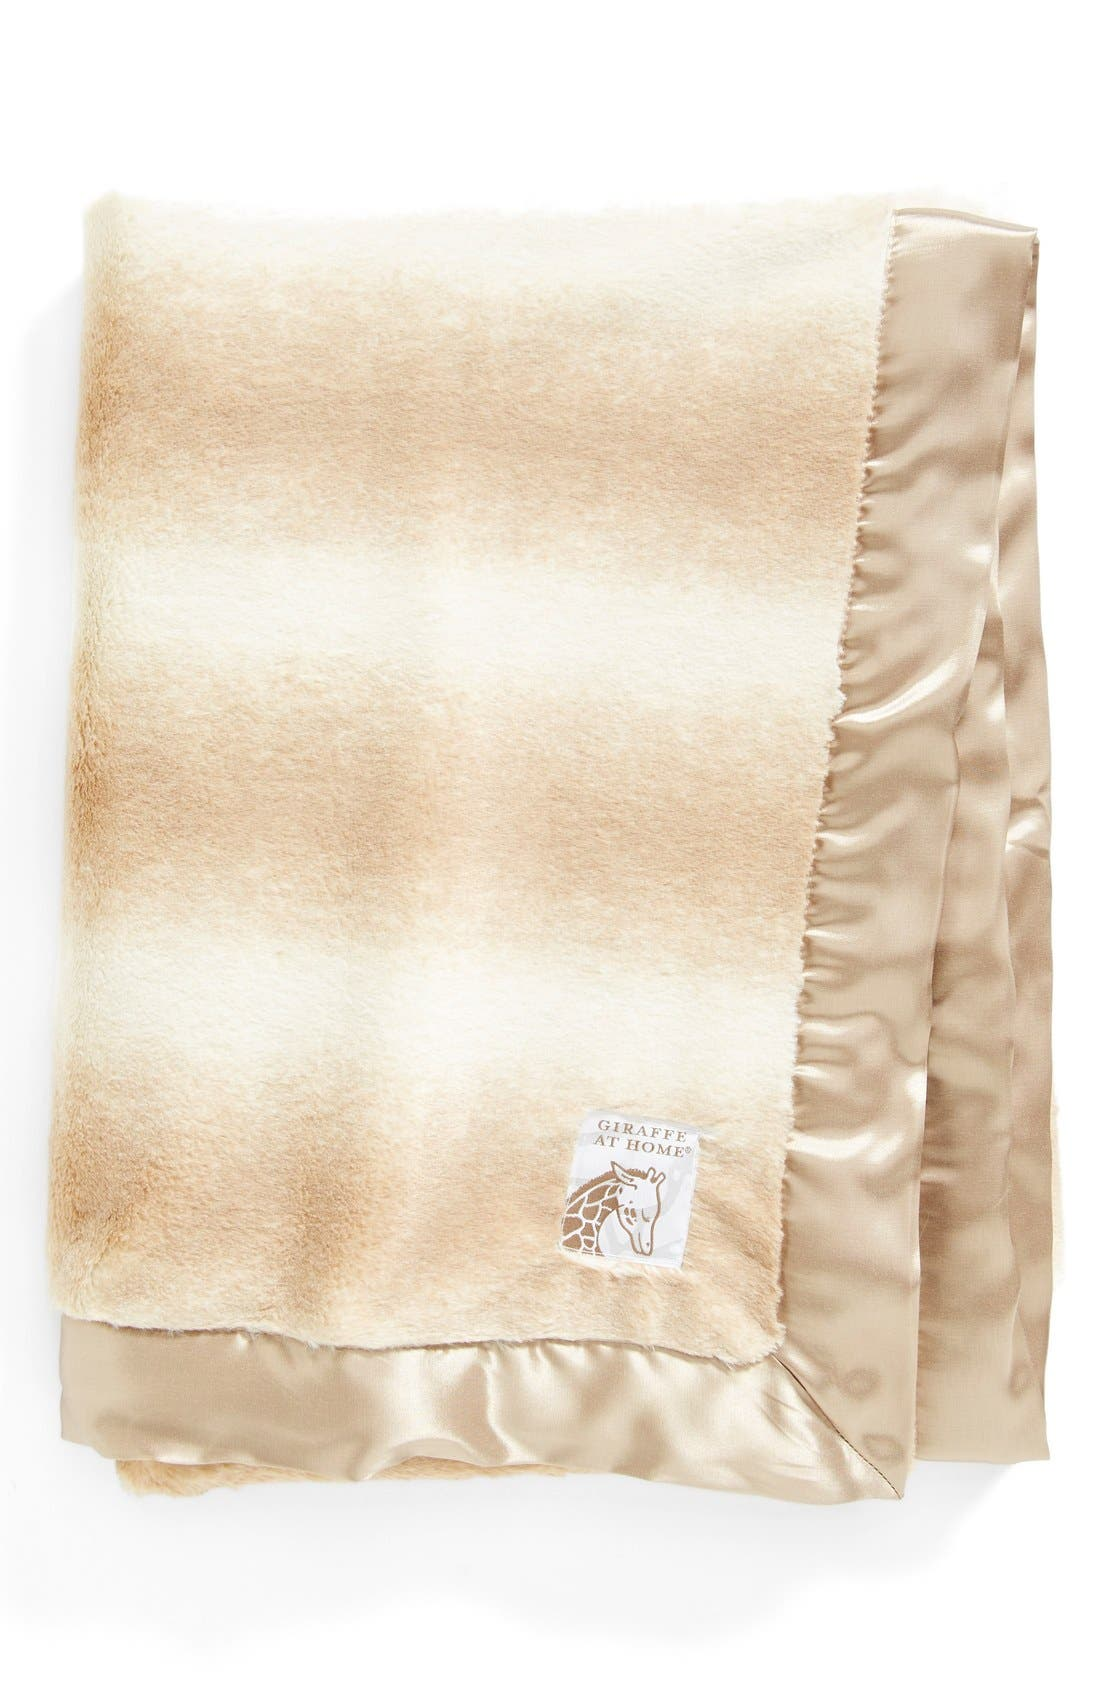 Alternate Image 1 Selected - Giraffe at Home Oversized 'Luxe Soufflé' Throw